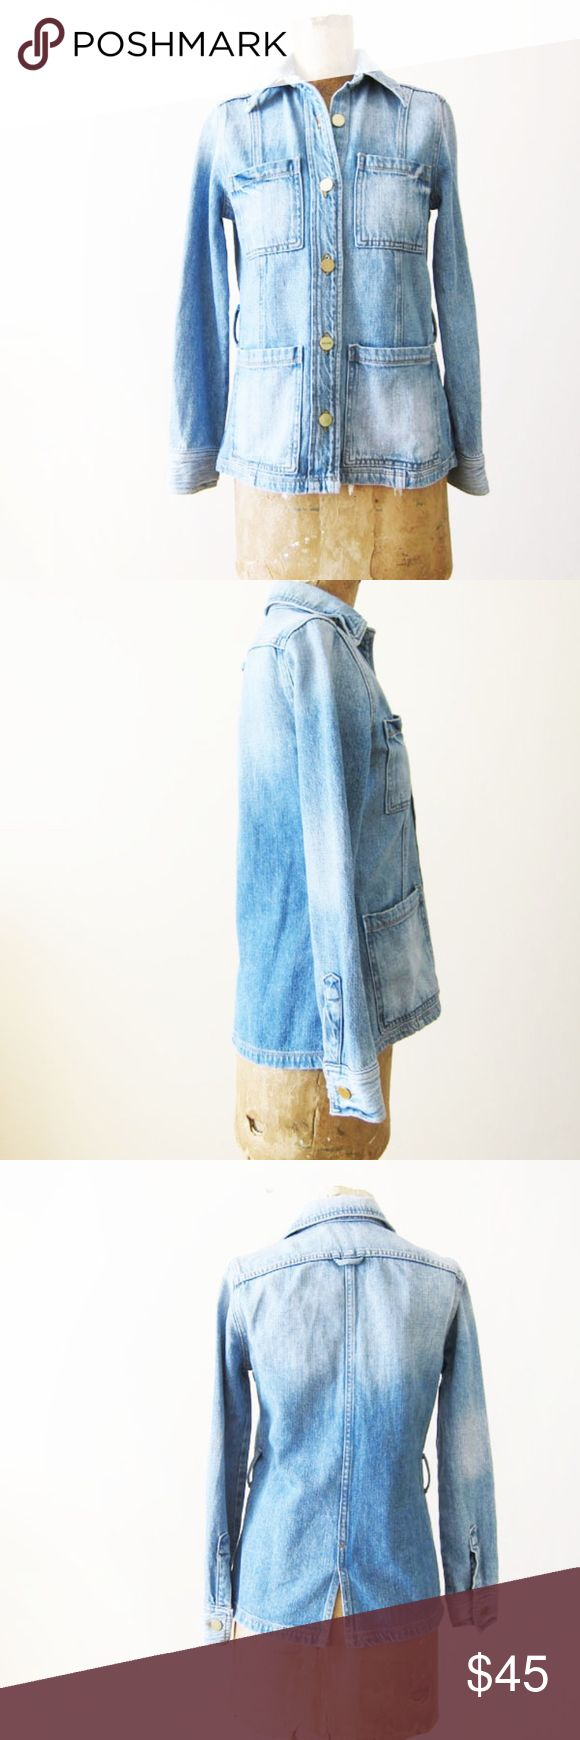 """FRAME Denim Le Patch Pocket Rangley Denim Shirt XS -MISSING BELT- SOLD AS IS.  For Sale: FRAME Denim Rangley Le Patch pocket denim jacket. New without tags however, belt is missing. Sold as is.  From the website: FRAME denim jacket. Spread collar; button front. Long sleeves; single-button cuffs. Four front patch pockets. Slim silhouette. Self-tie belt cinches the natural waist. Straight hem. Yoked back. Back center vent. Cotton. made in USA of imported material.  Length: 23"""" Chest: 34""""…"""